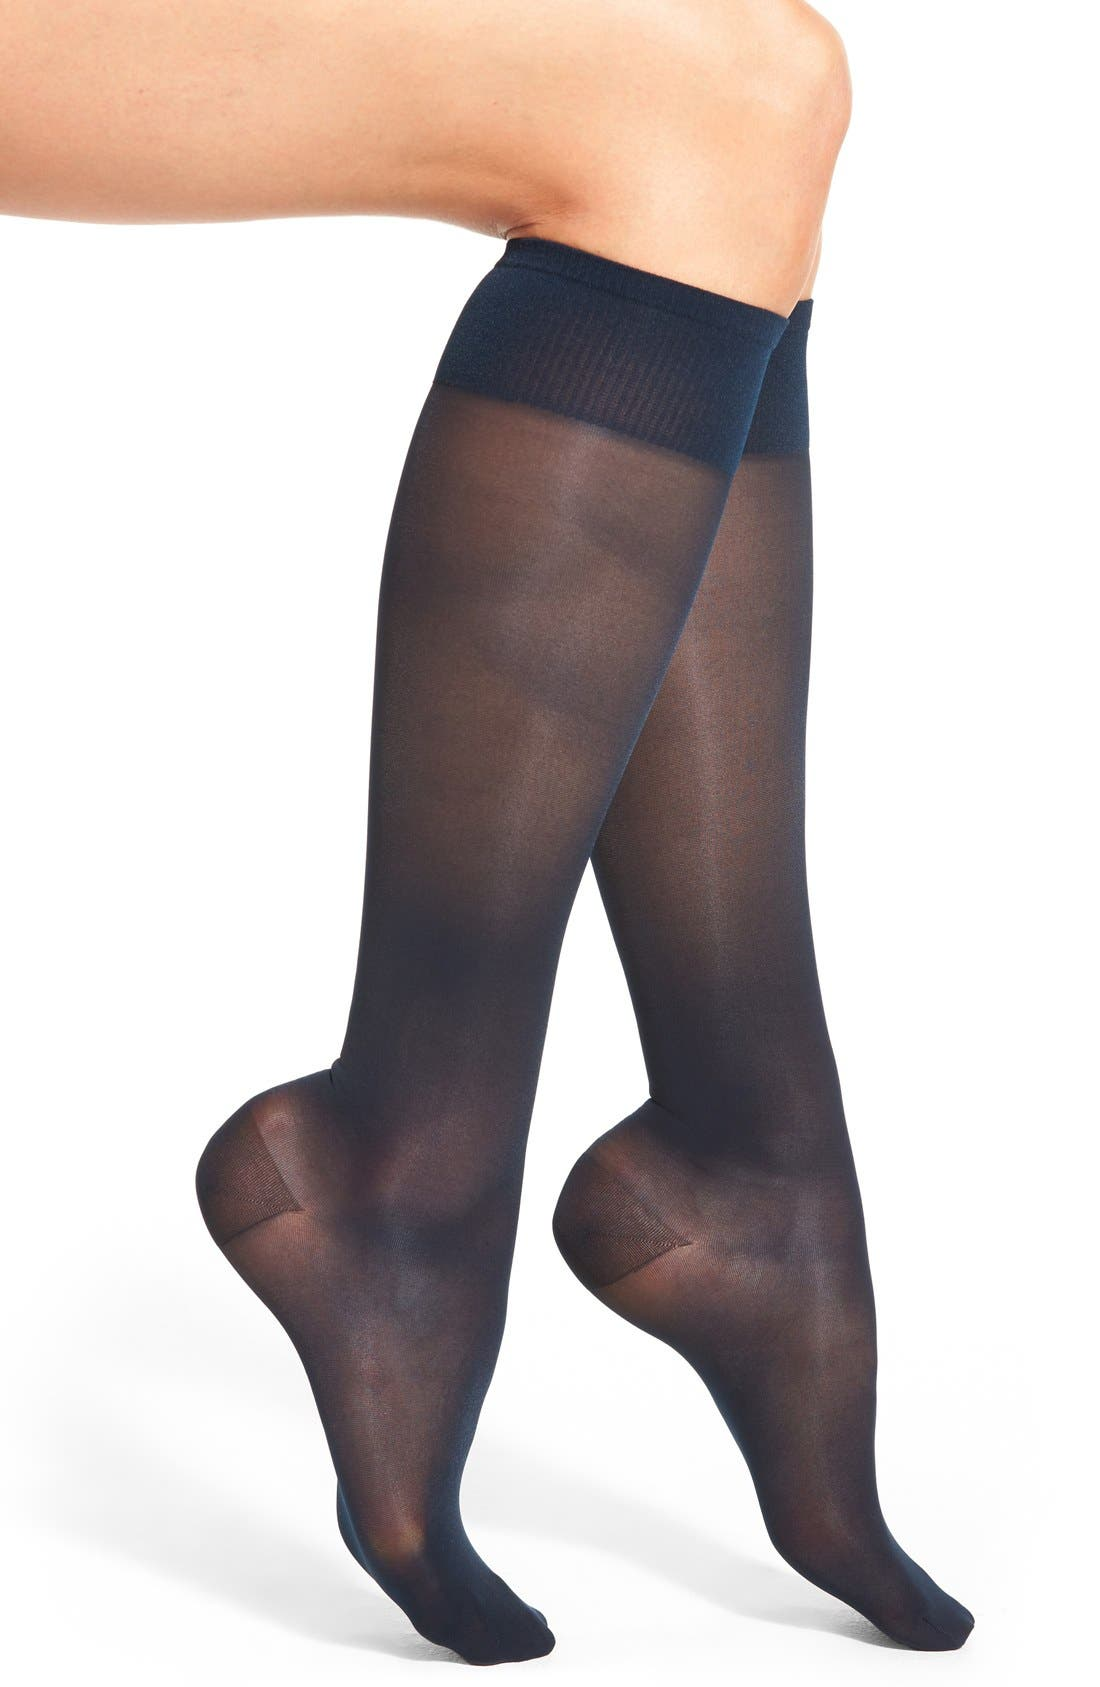 Alternate Image 1 Selected - INSIGNIA by SIGVARIS Knee High Trouser Socks